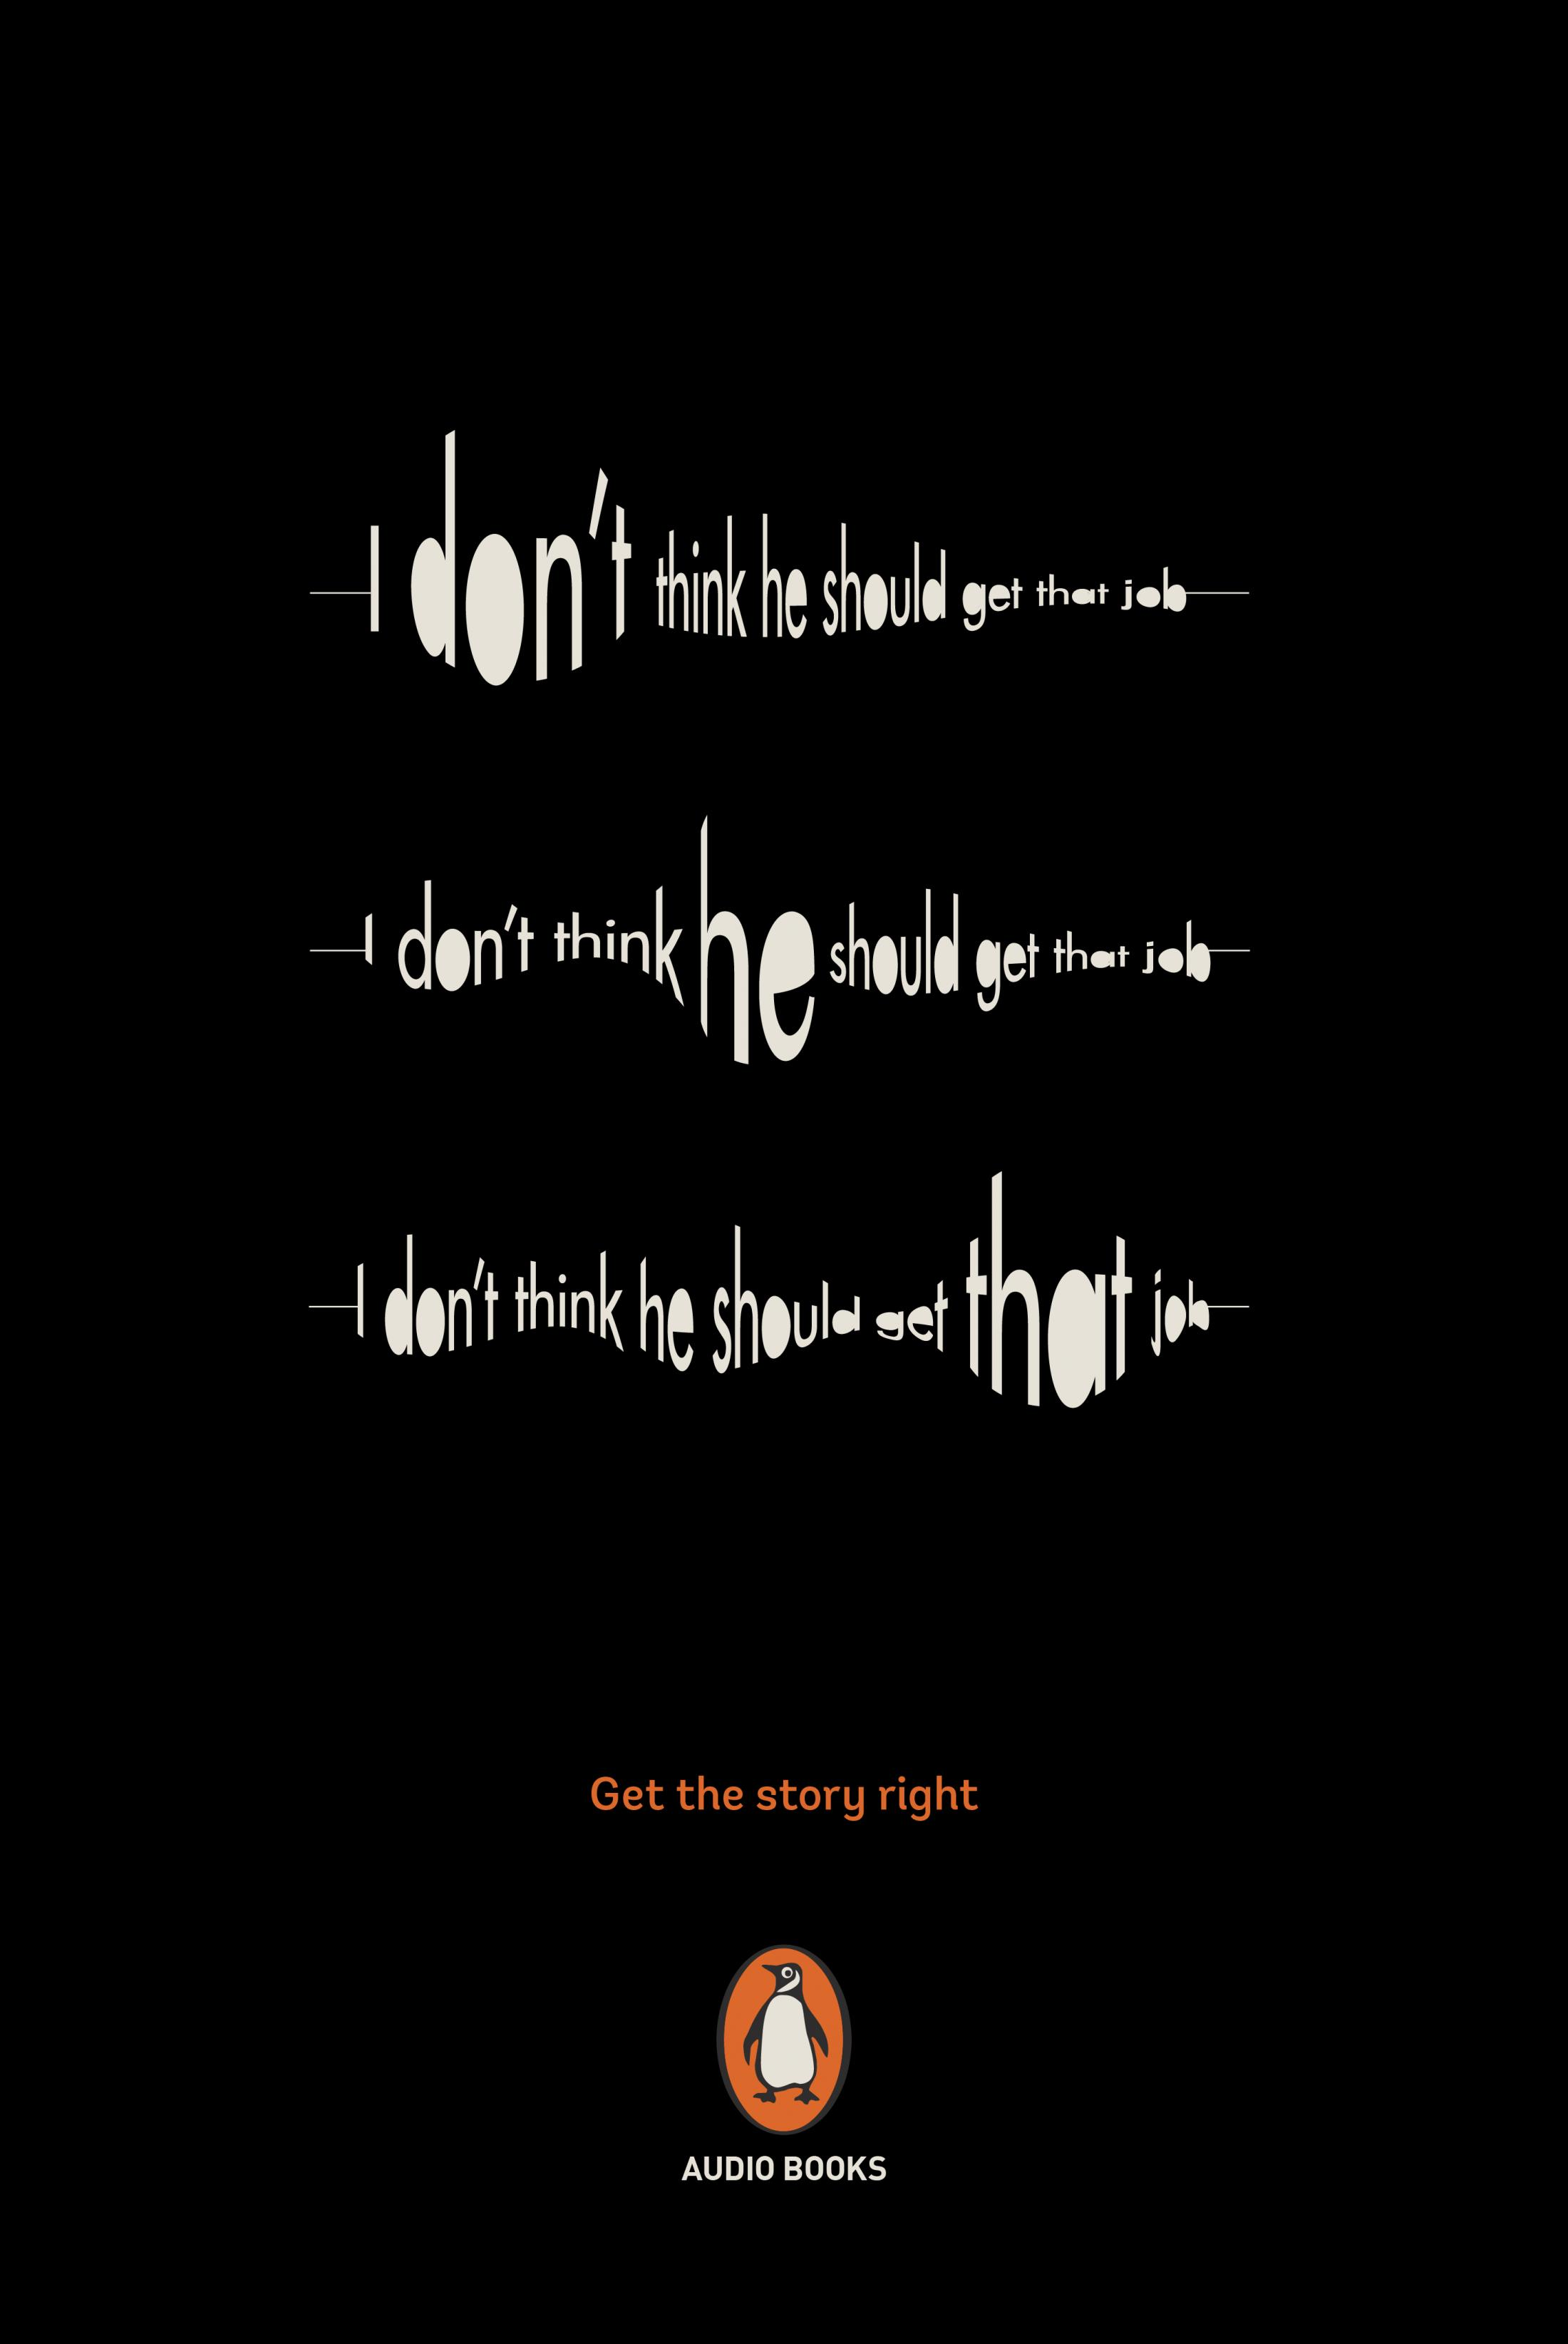 Penguin Print Ad - Get the Story Right, 3